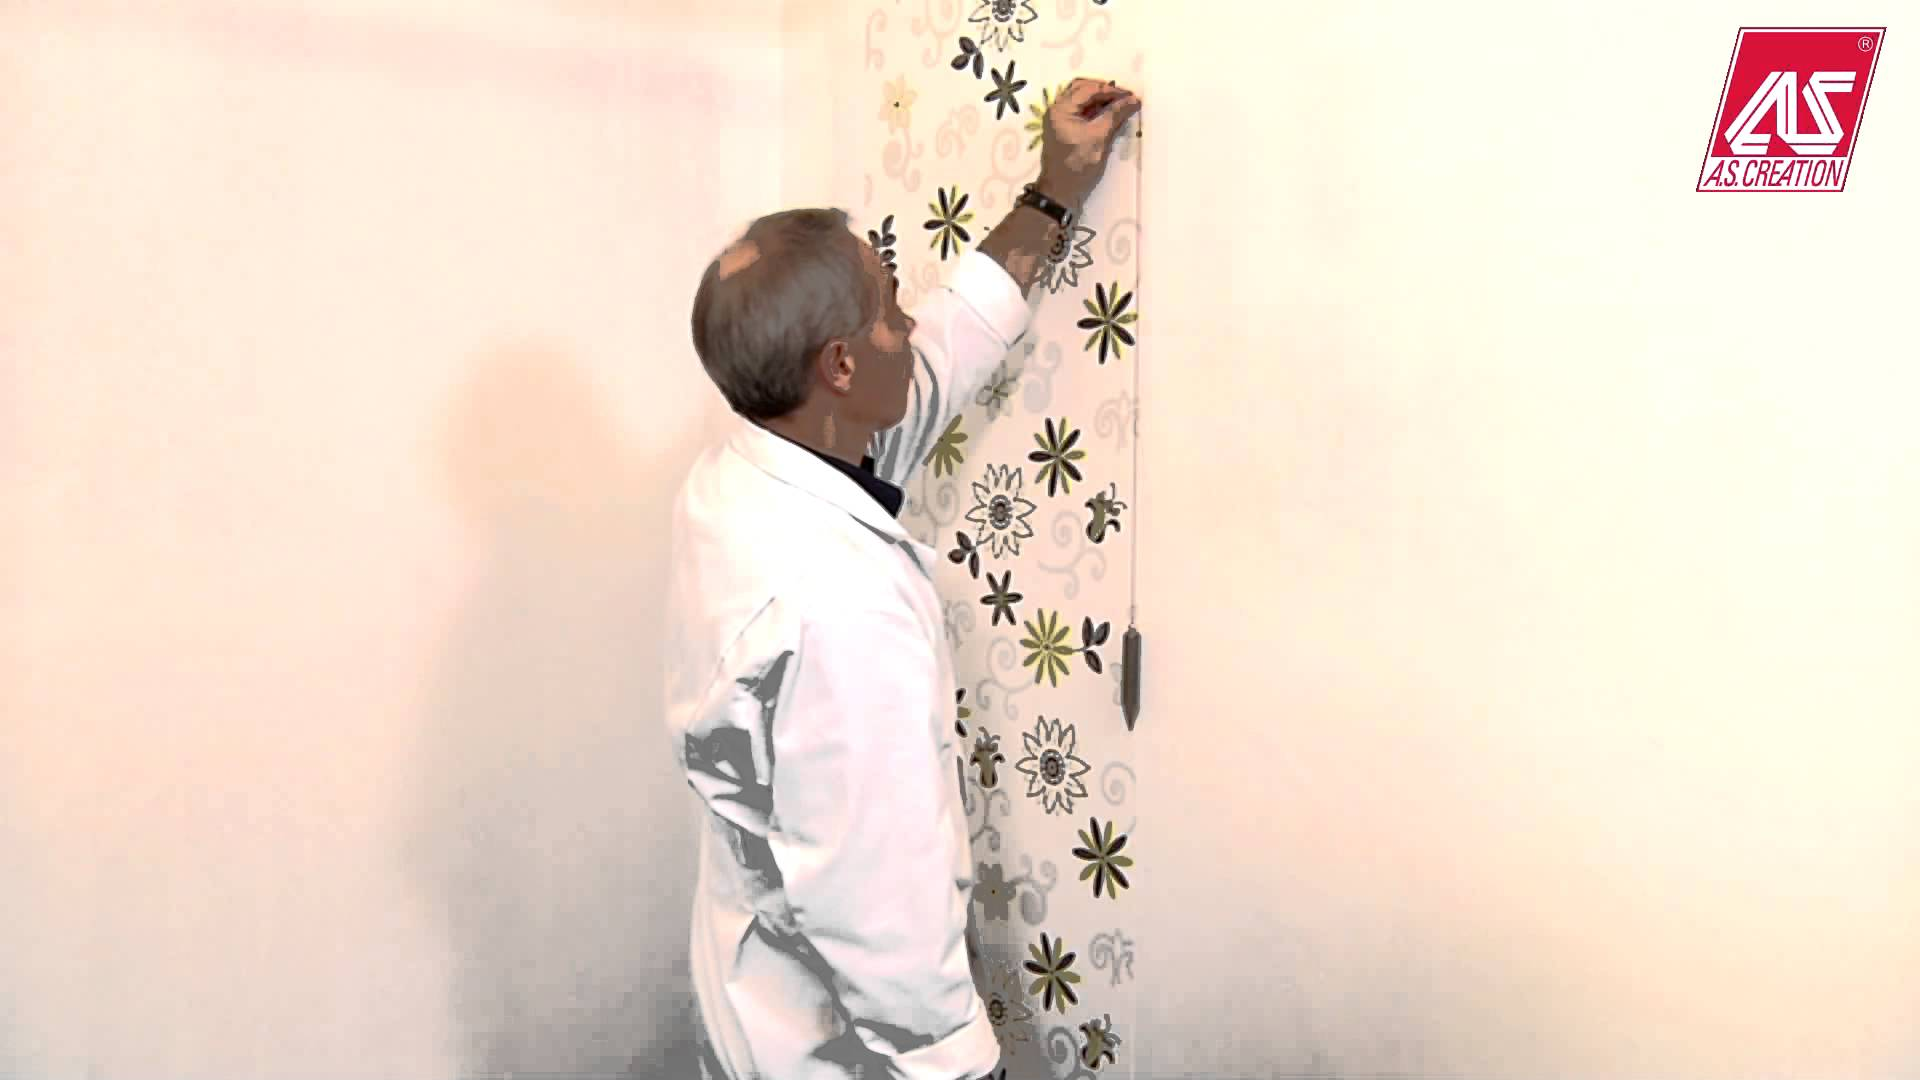 How To Use A Plumb Line When Wallpapering